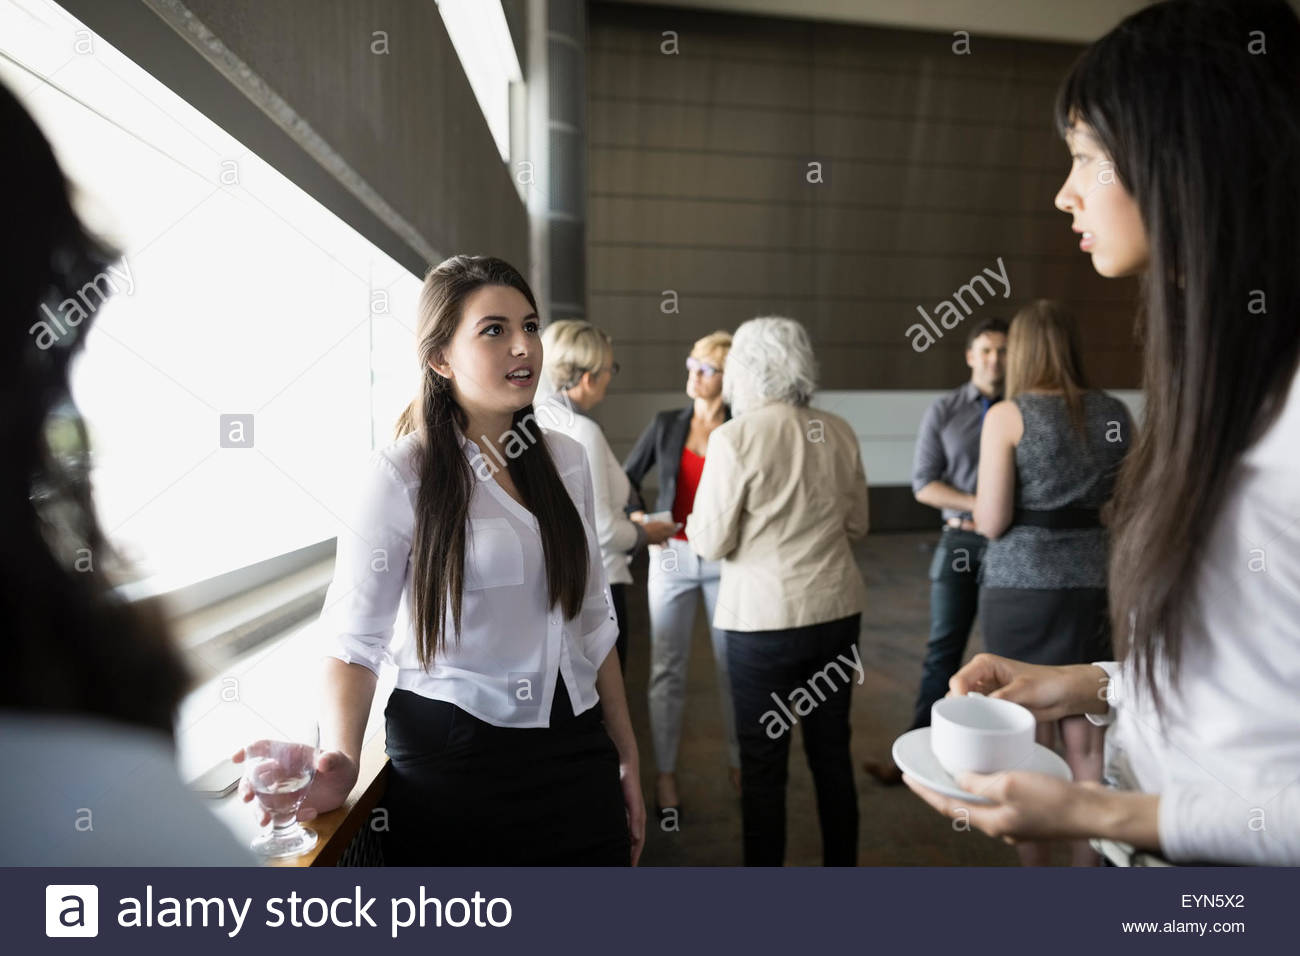 Women socializing in auditorium - Stock Image